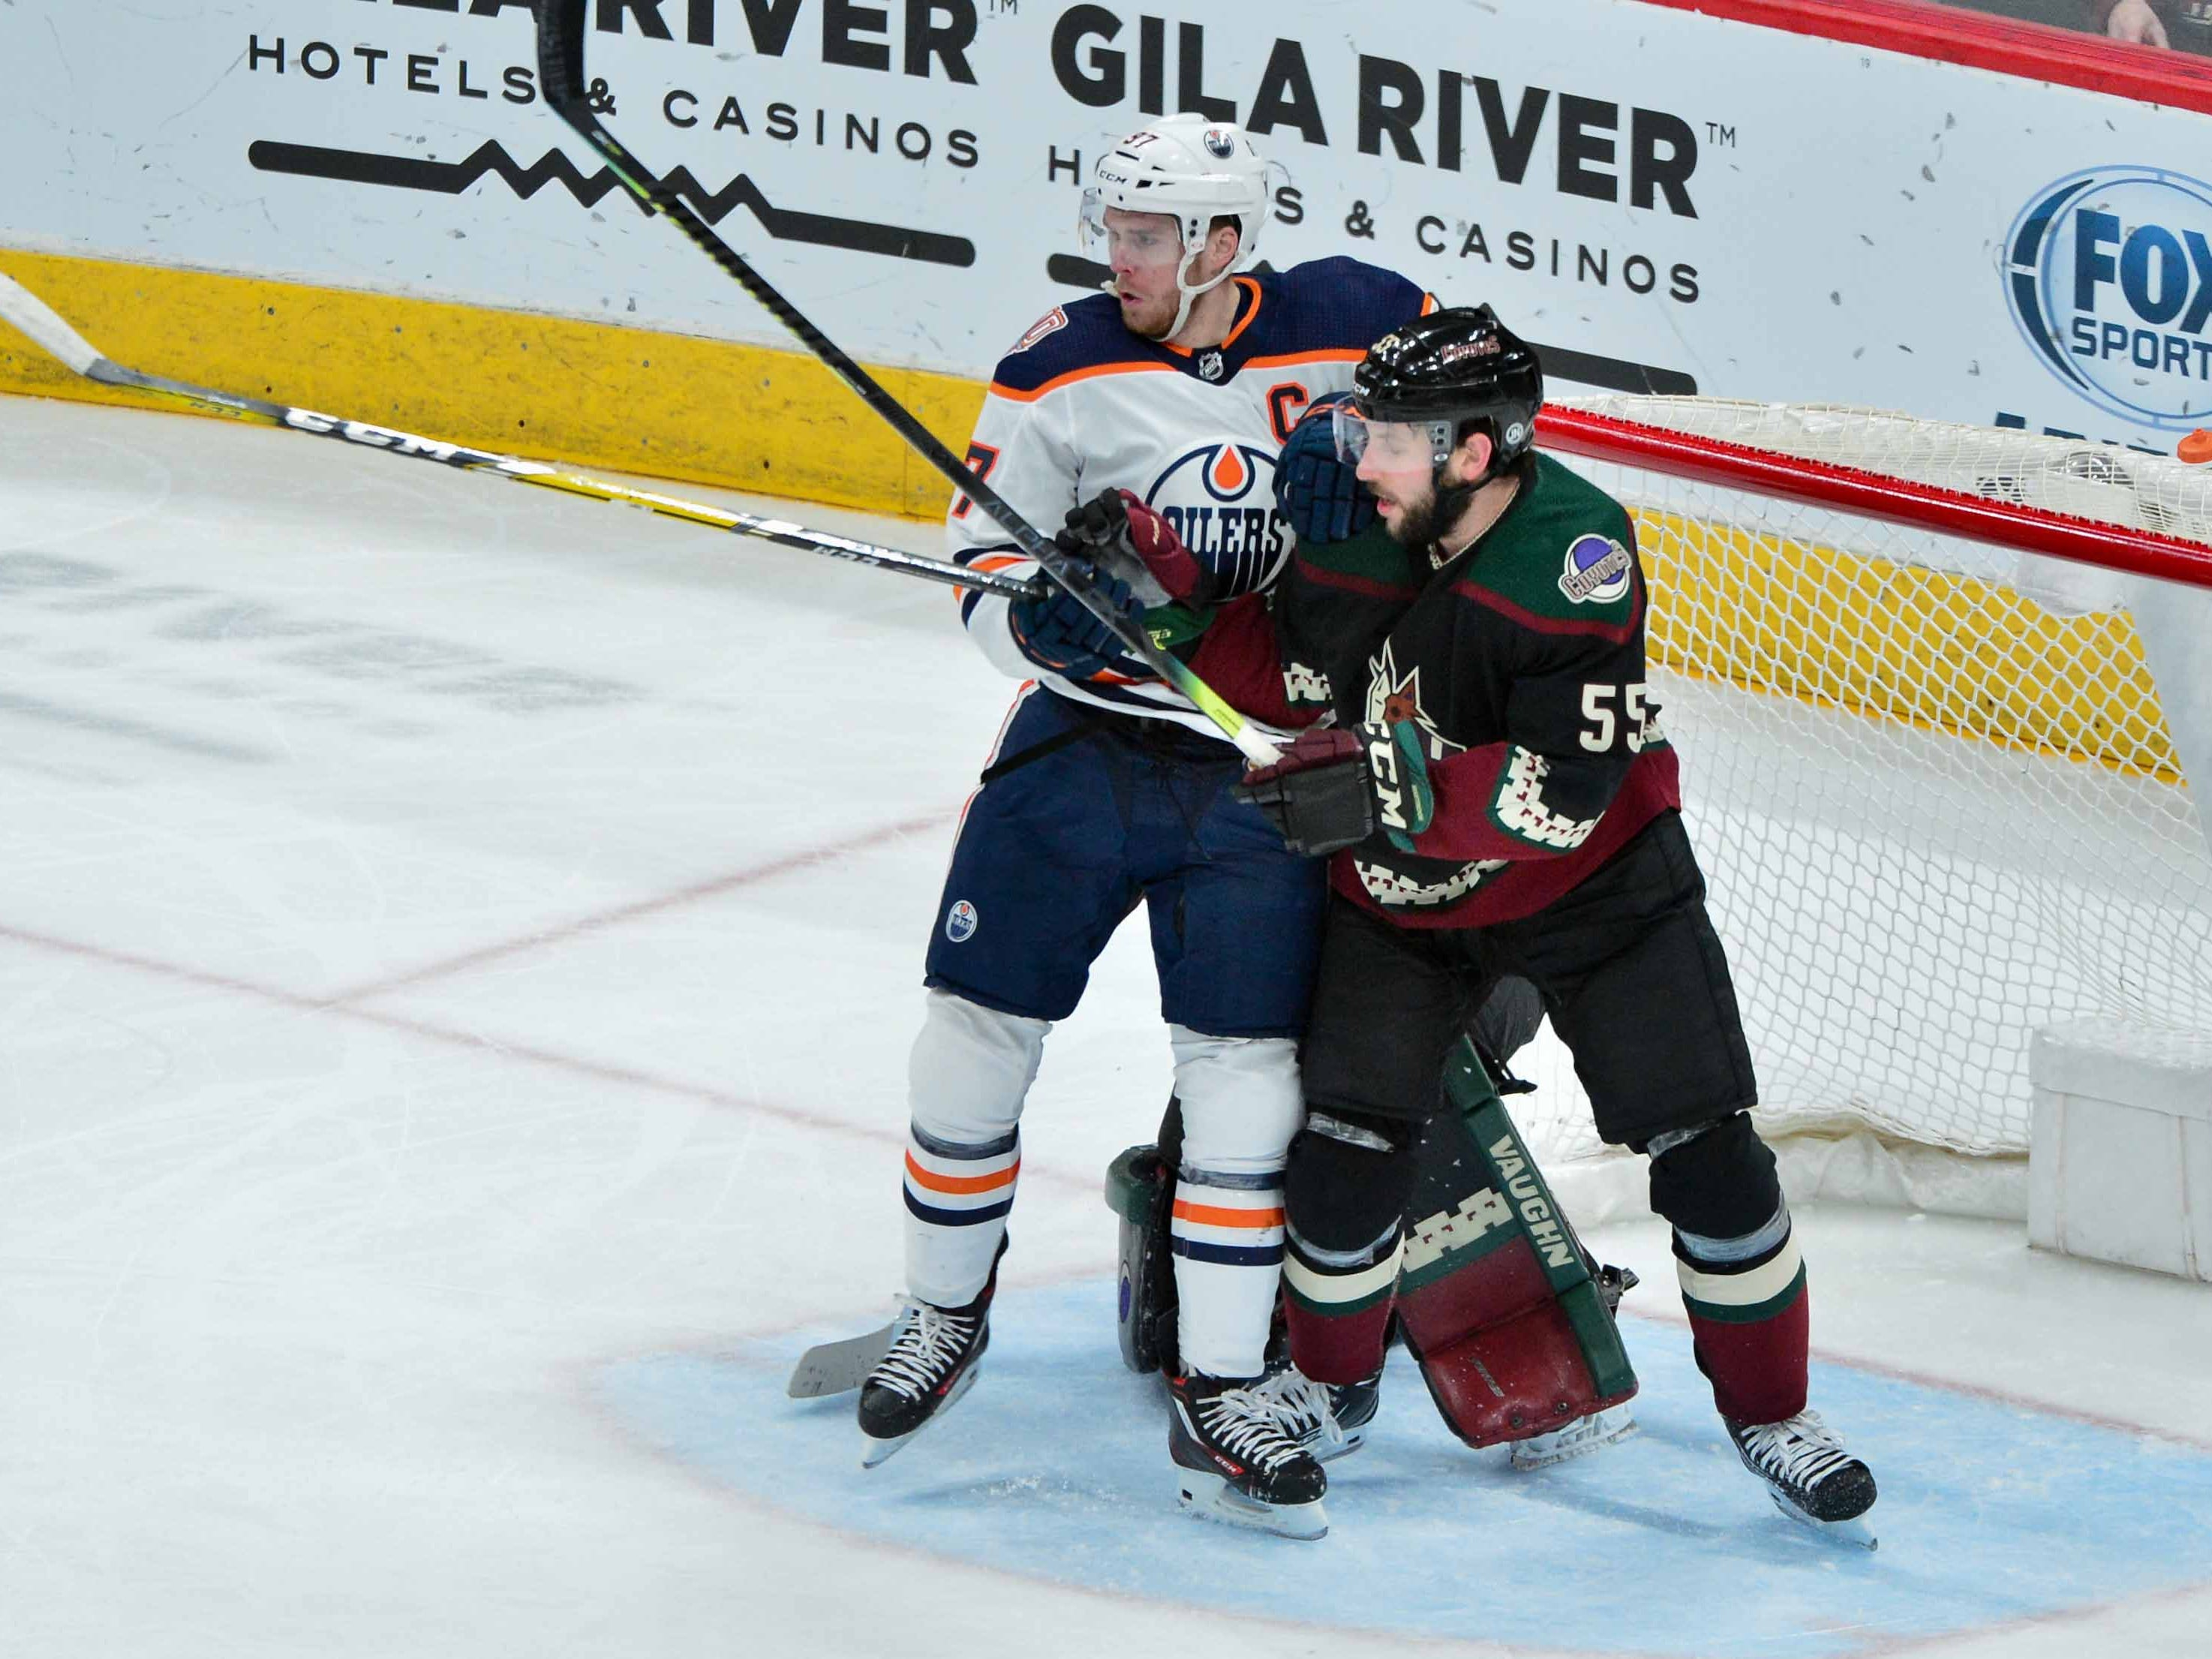 Mar 16, 2019; Glendale, AZ, USA; Edmonton Oilers center Connor McDavid (97) and Arizona Coyotes defenseman Jason Demers (55) battle for position in front of the net during the second period at Gila River Arena.